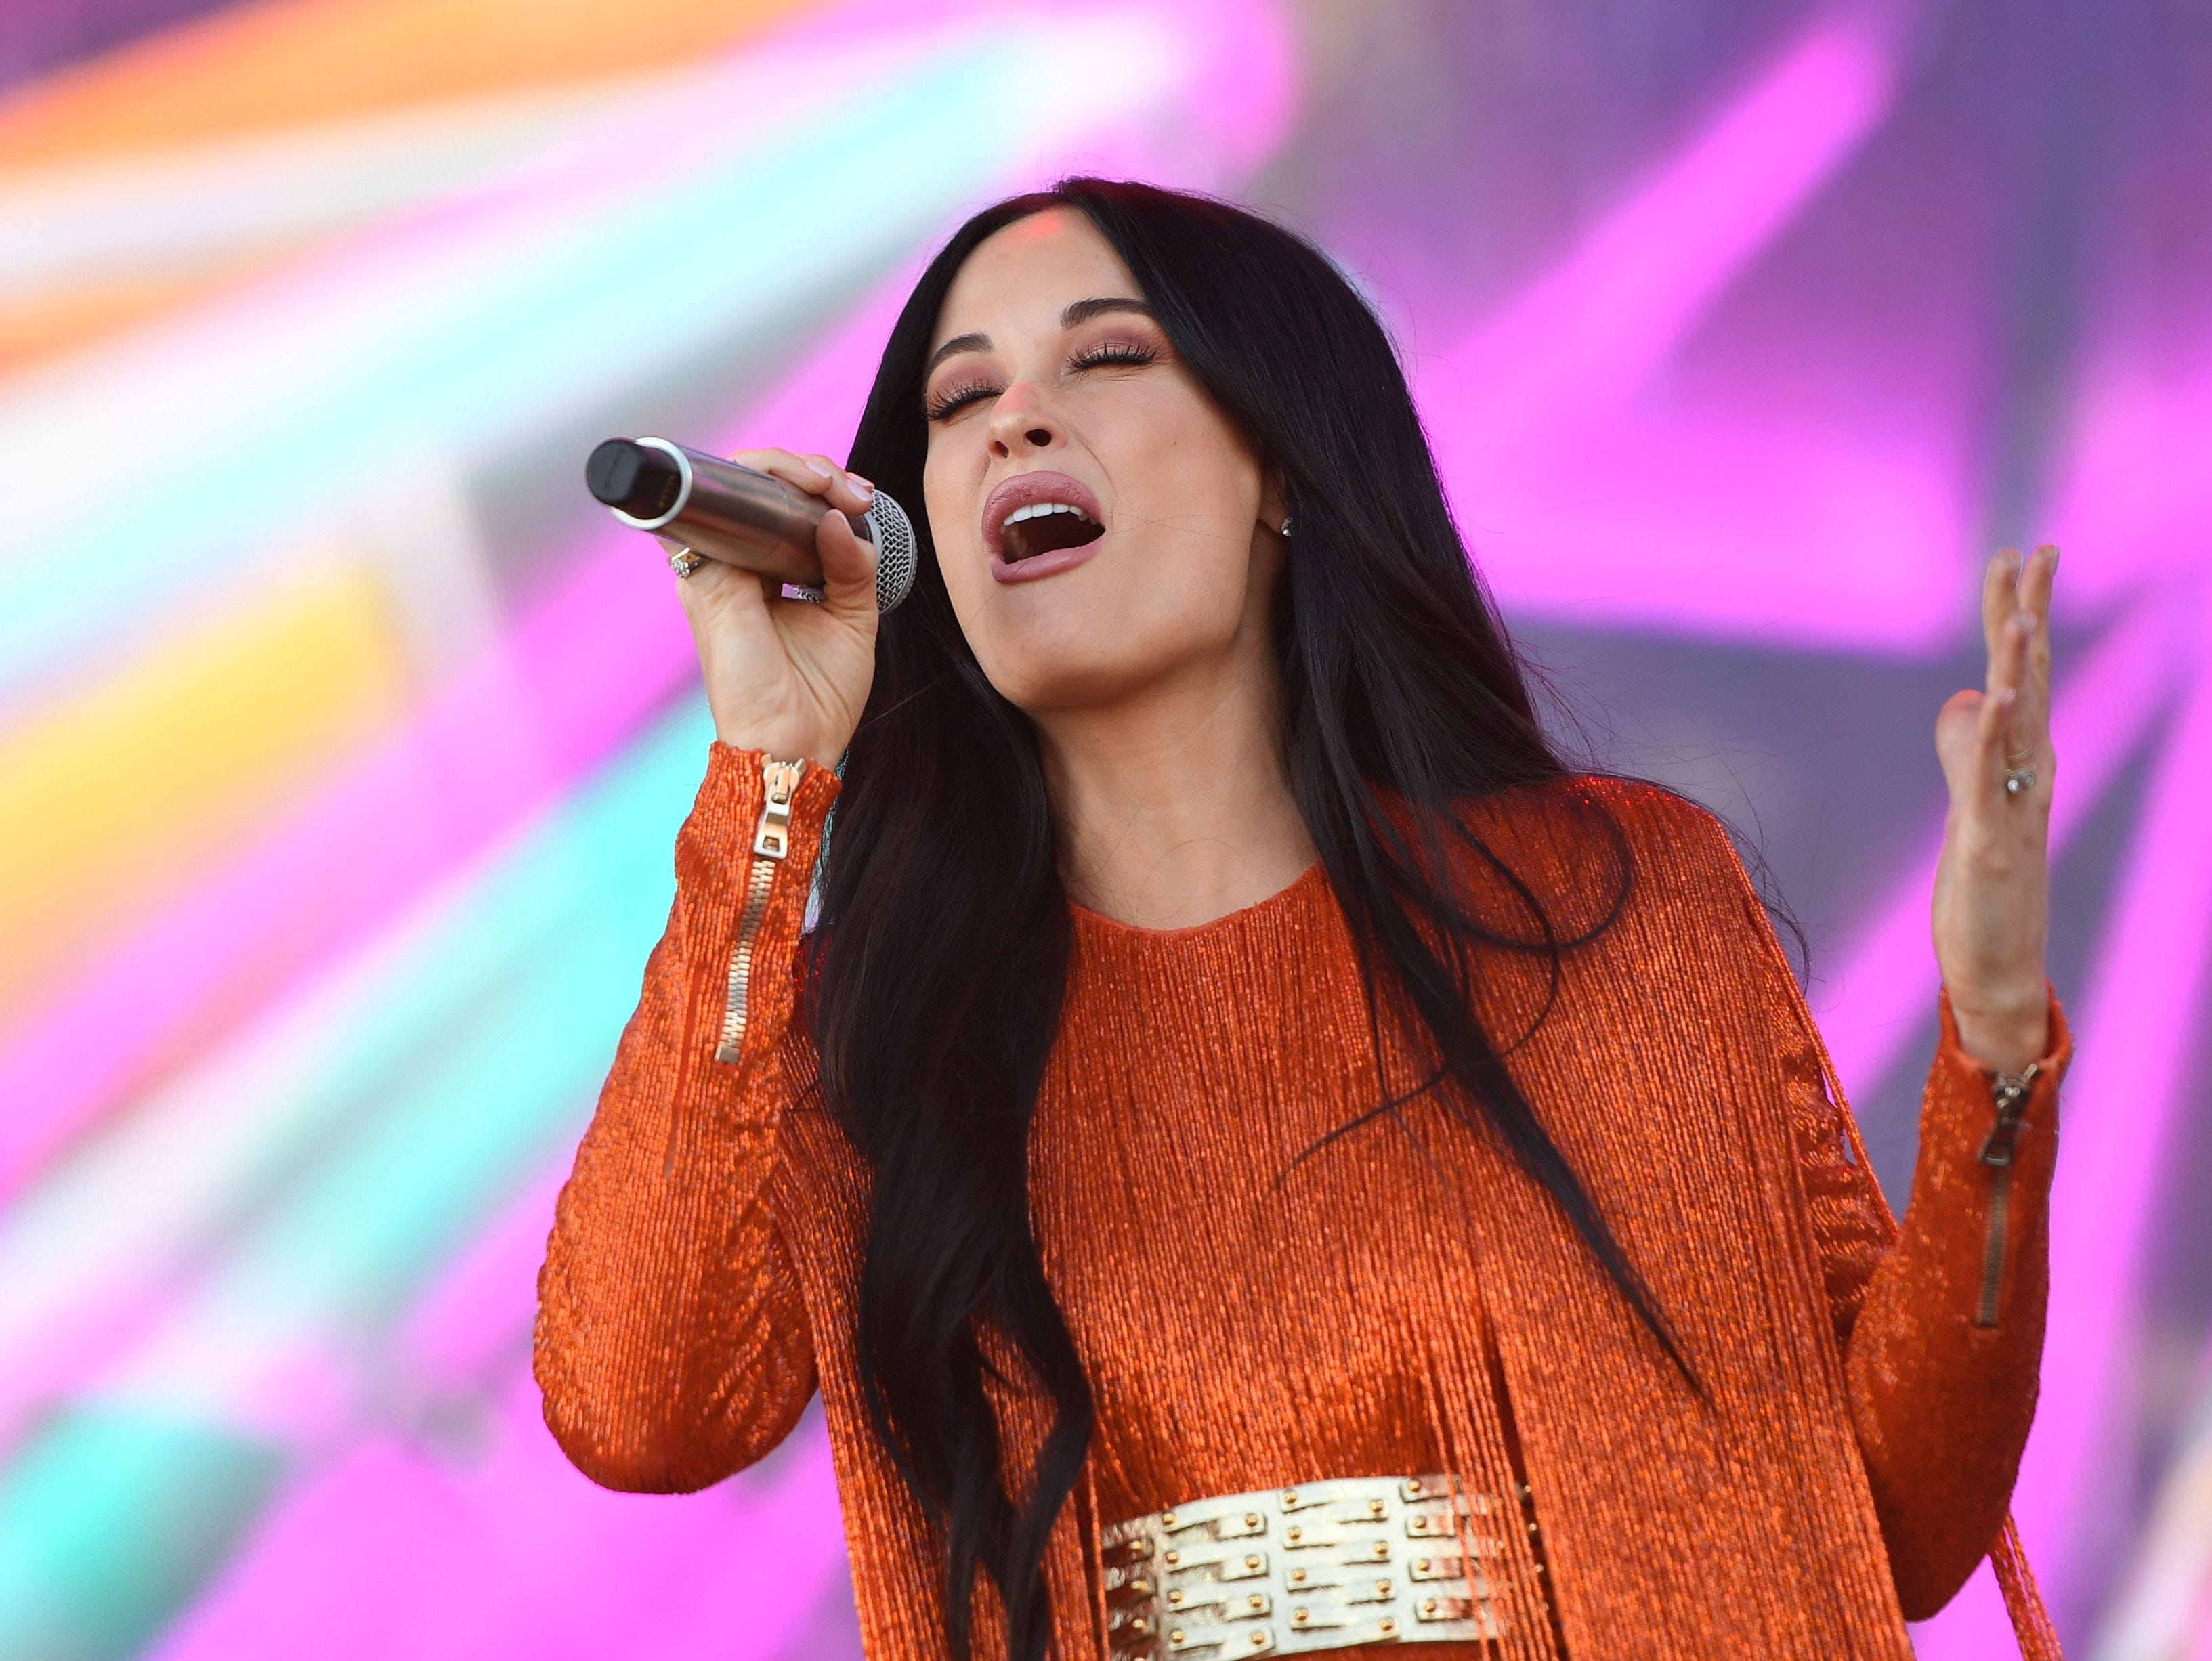 Singer/songwriter Kacey Musgraves performs on stage at Coachella Music Festival on April 12, 2019 in Indio, California. (Photo by VALERIE MACON / AFP)VALERIE MACON/AFP/Getty Images ORG XMIT: Ariana Gr ORIG FILE ID: AFP_1FM04D